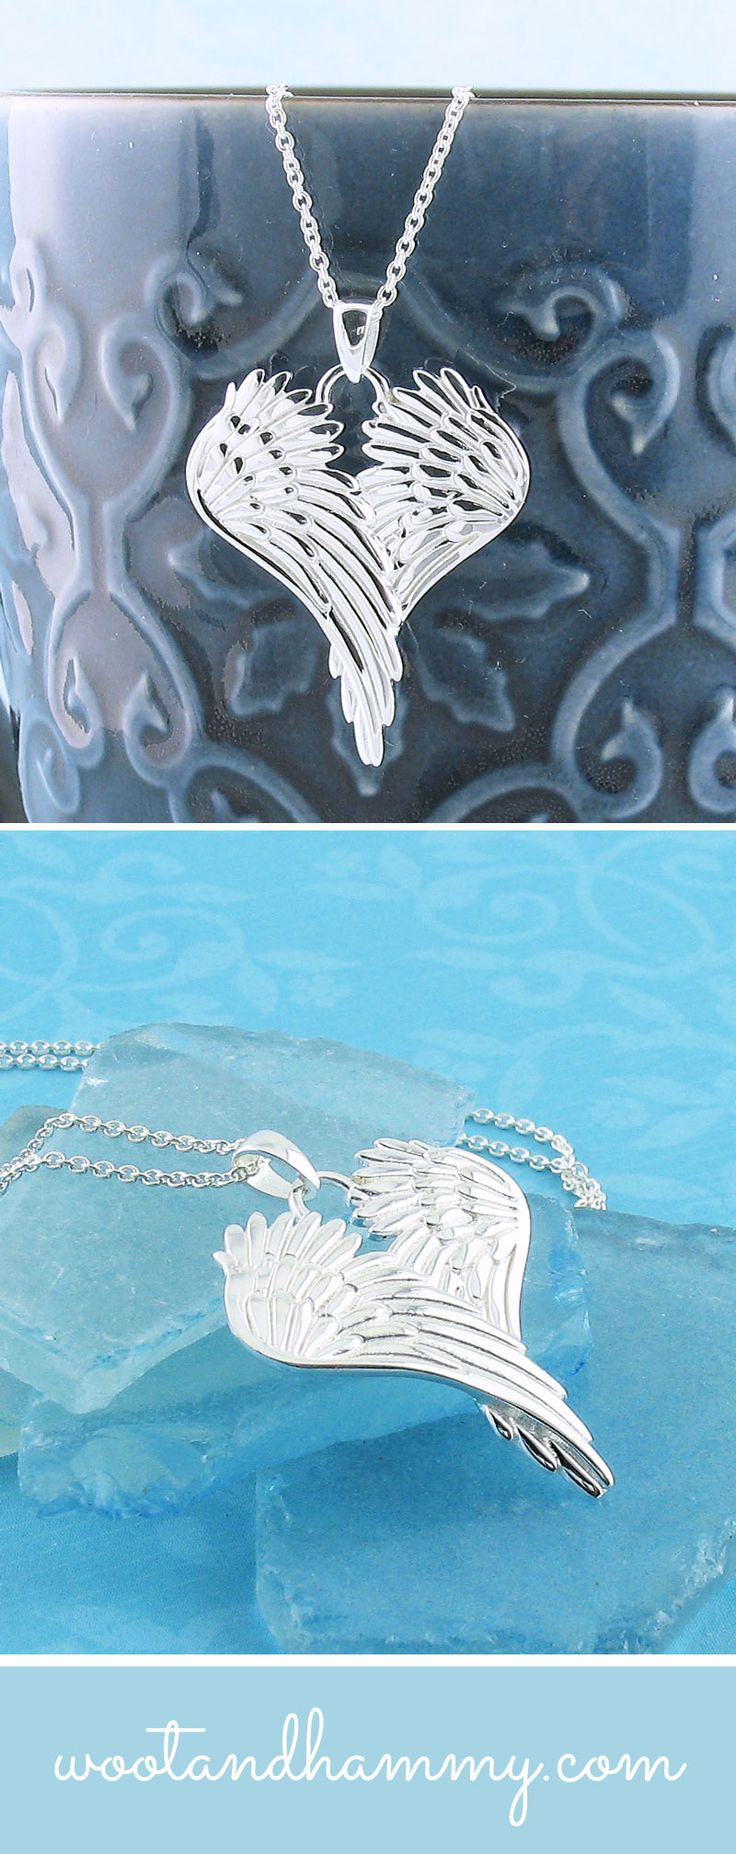 Peacefully folded over one another, these angel wings are embellished with a feather texture that adds light and movement to this special piece. A polished, pure silver plating gives it a bright, luminous look.